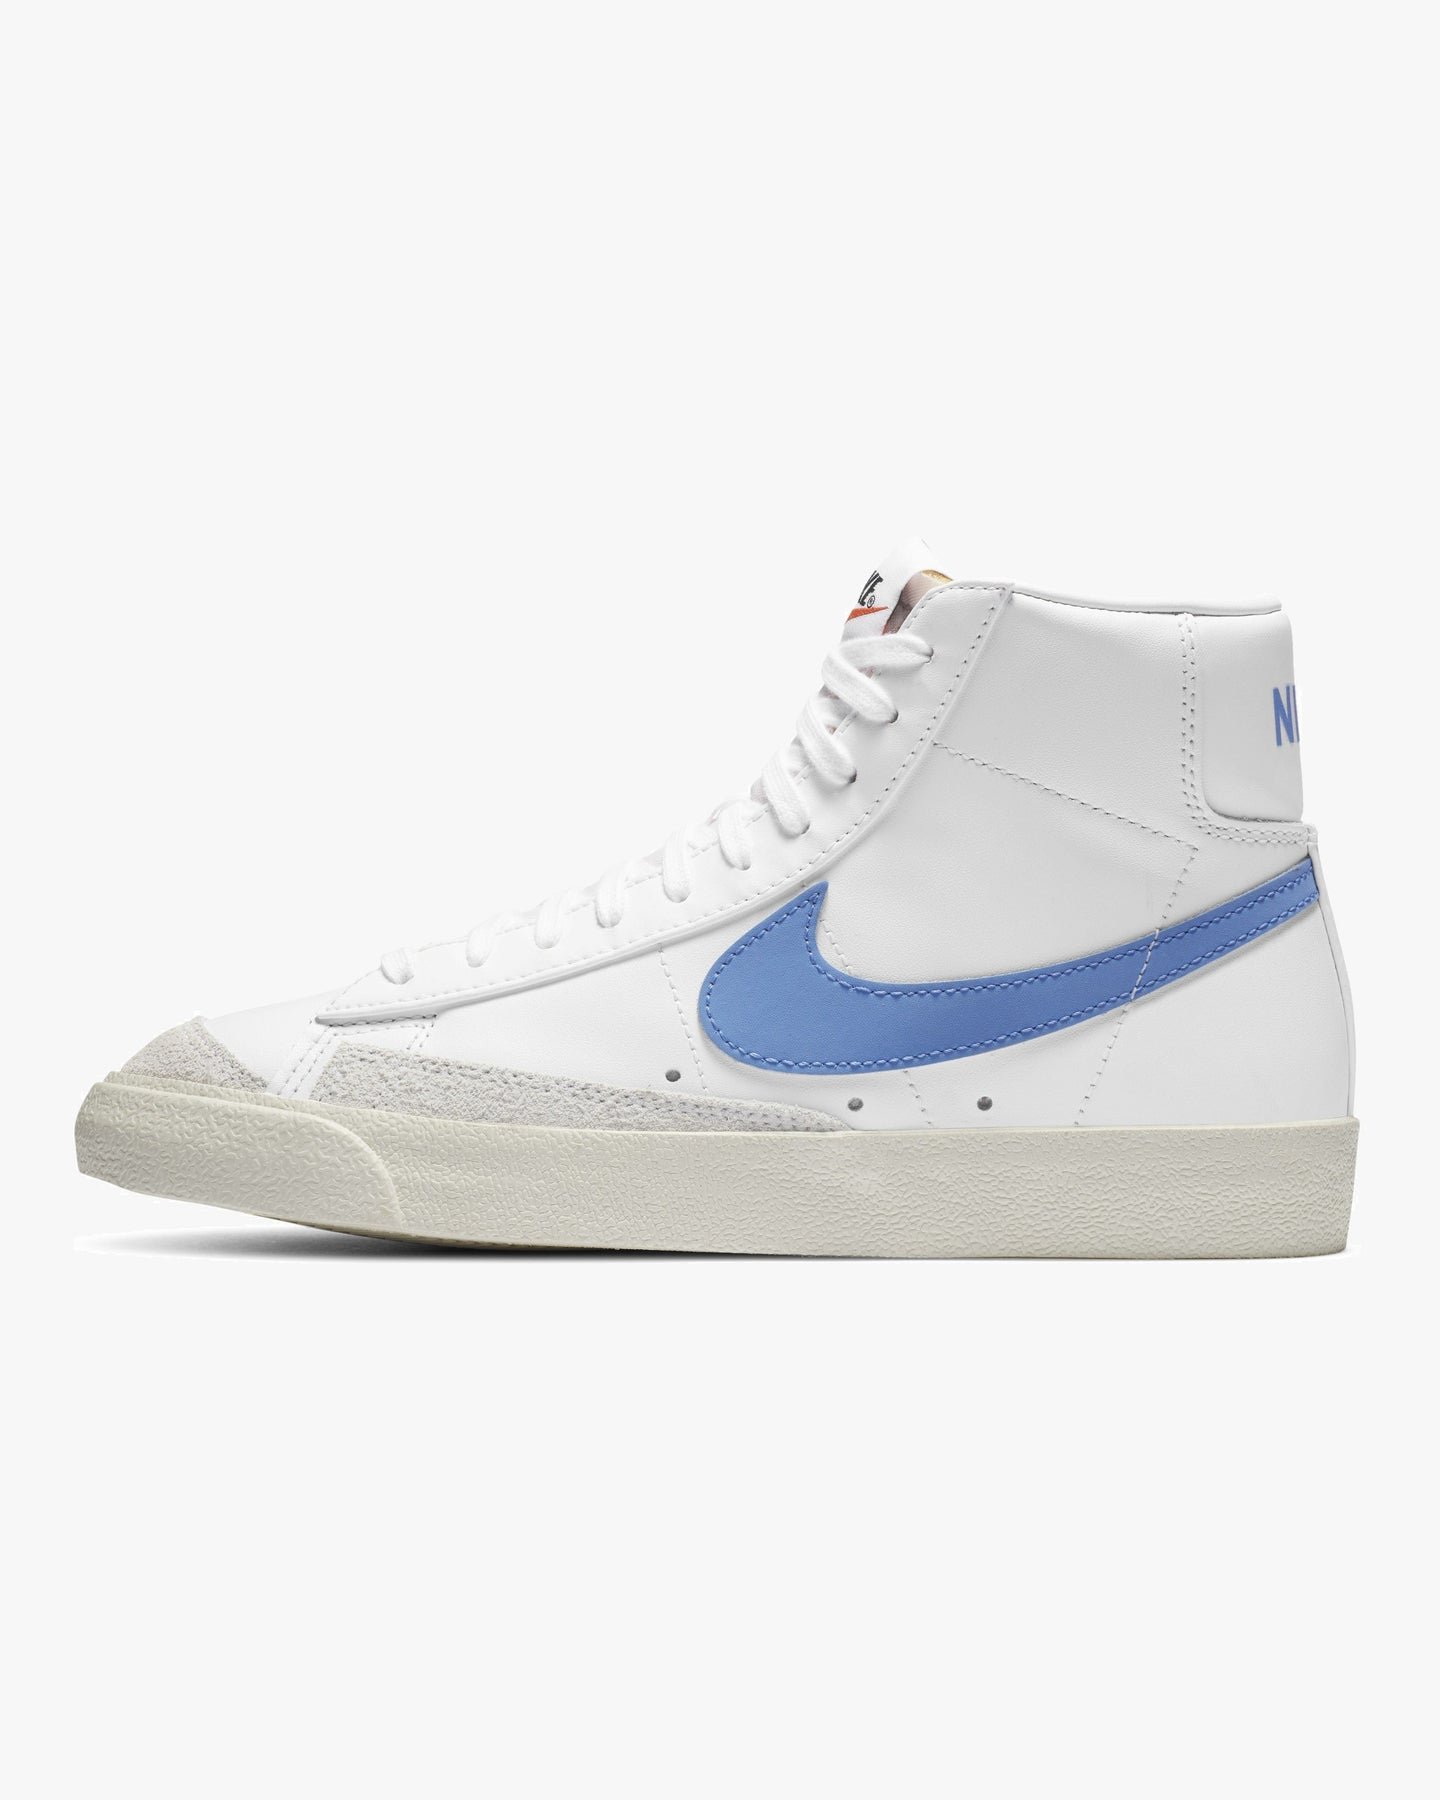 Nike Wmns Blazer Mid '77 Vintage - White / Royal Pulse / Hyper Crimson UK 3 CZ10551113 194499070337 Nike Trainers